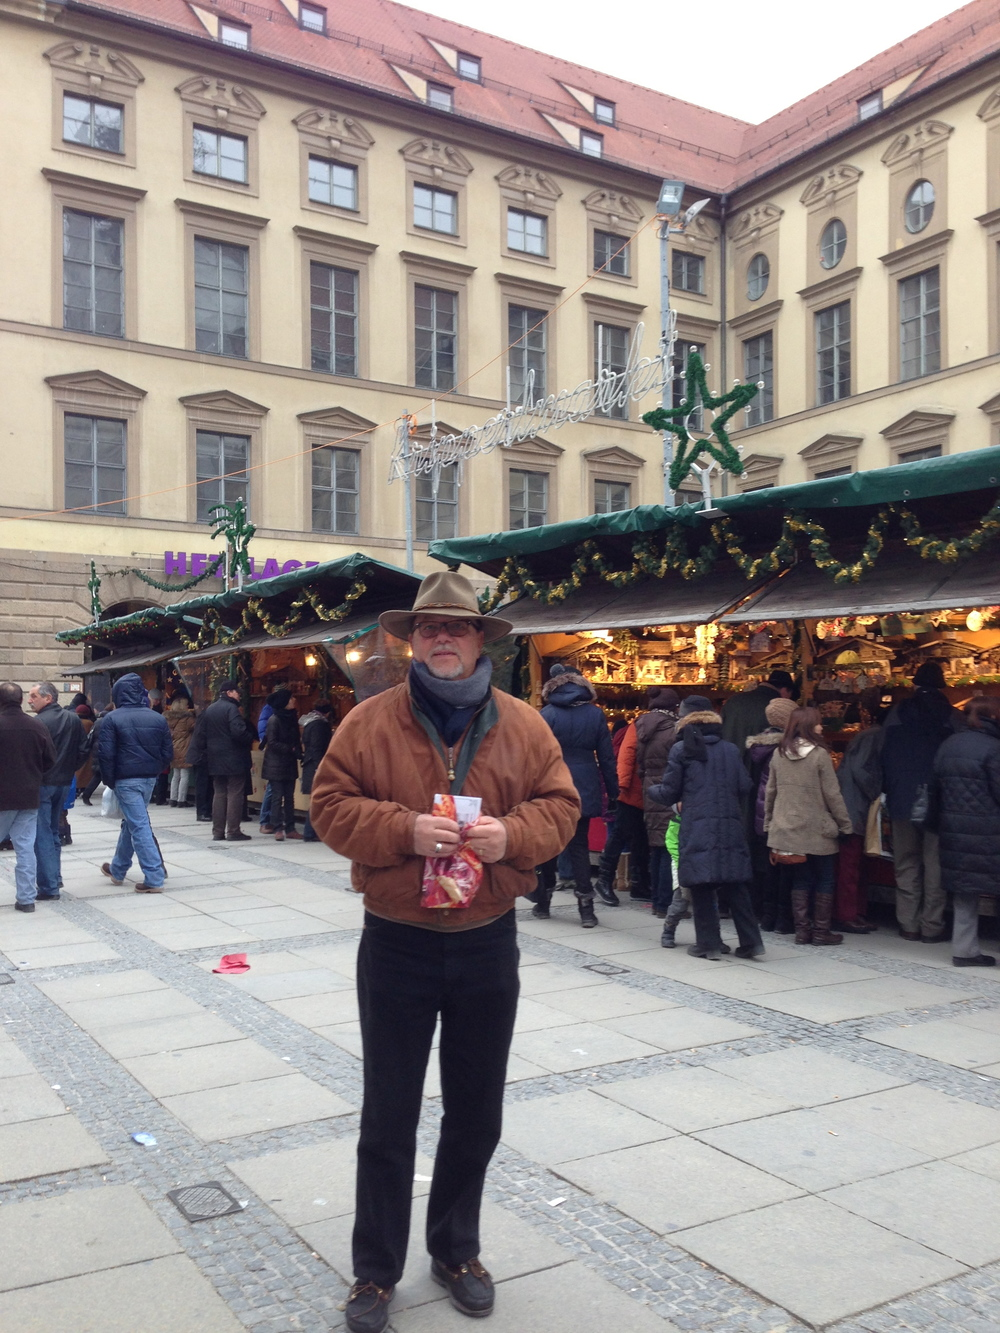 RESEARCH AT THE CHRISTMAS MARKETS IN MUNICH